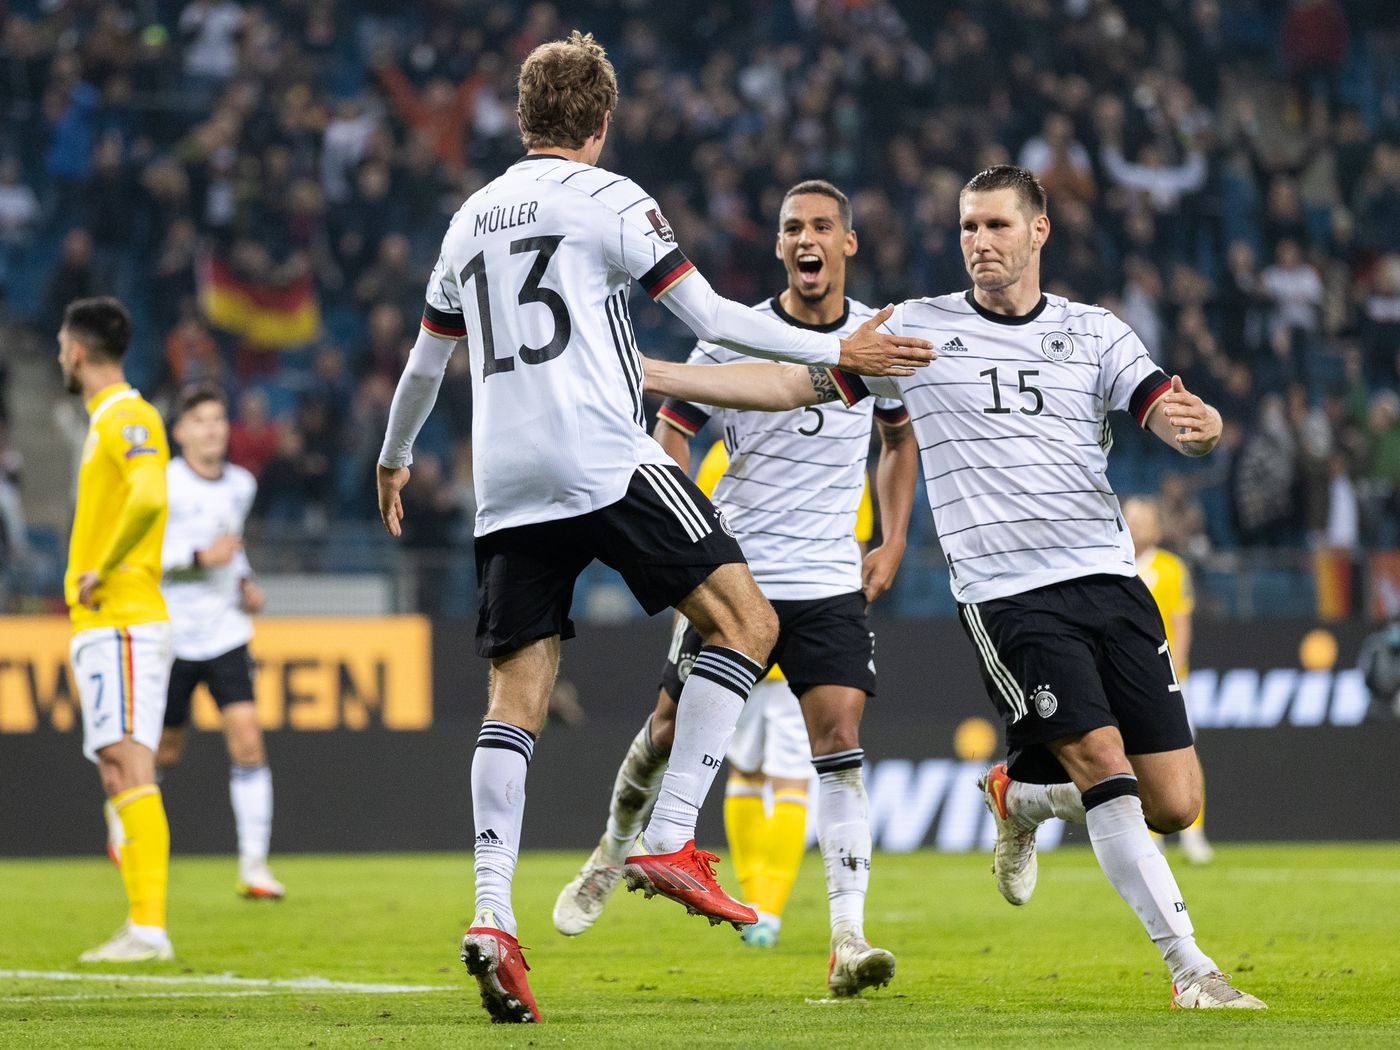 Match awards from Germany's last gasp 20 20 victory over Romania ...